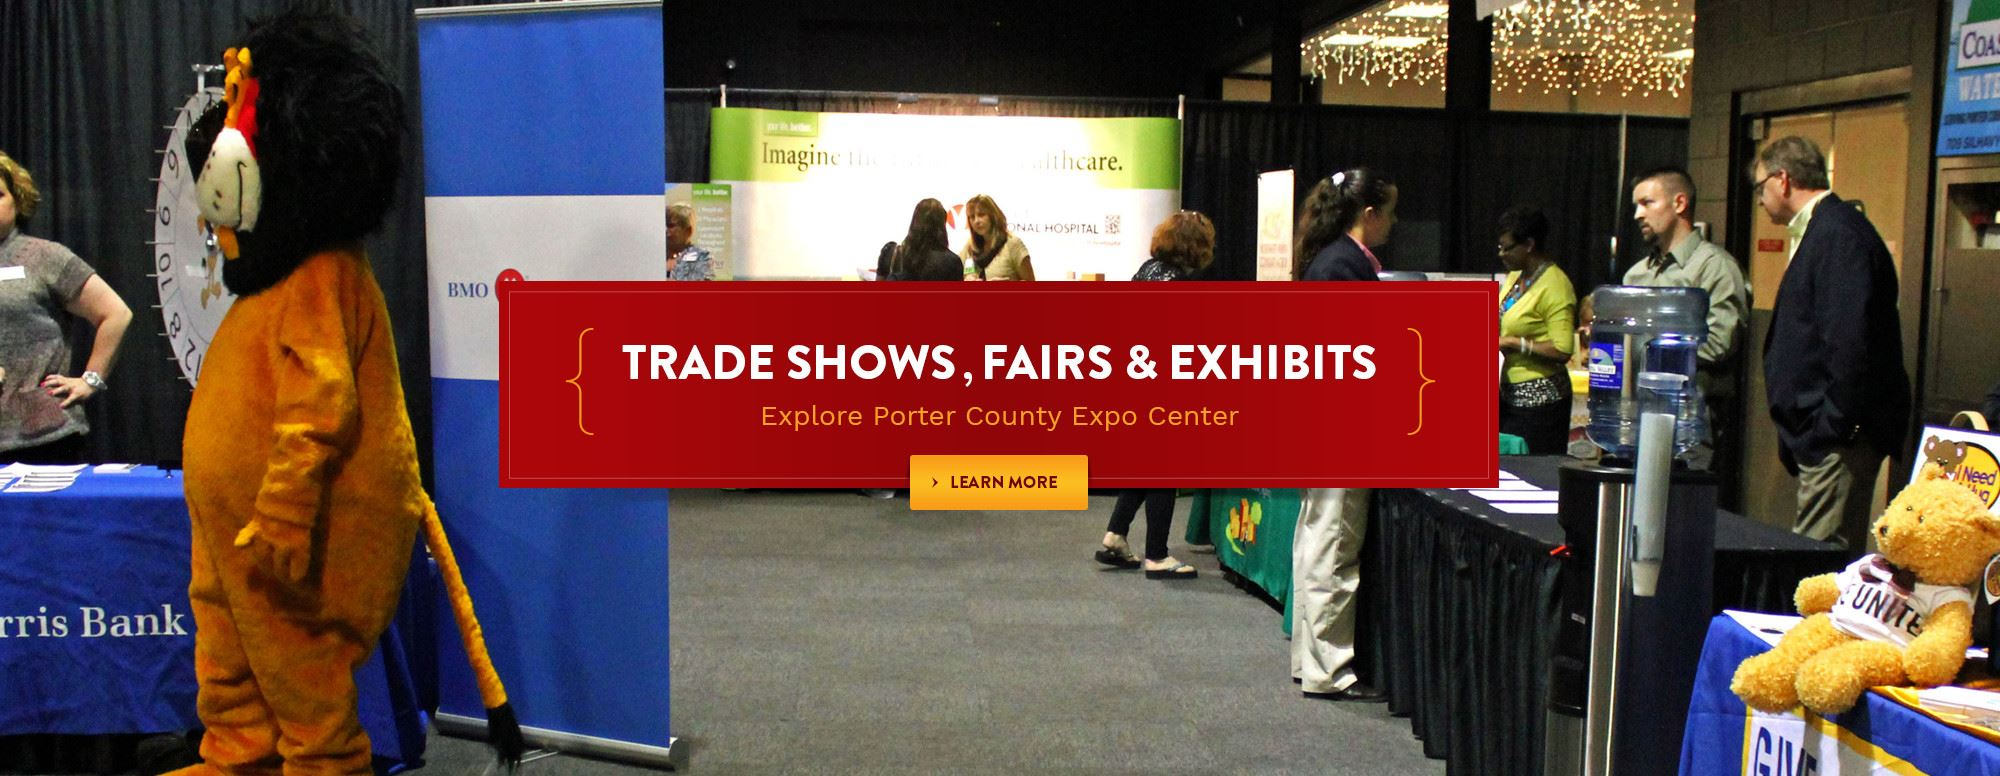 Fairs and Exhibits